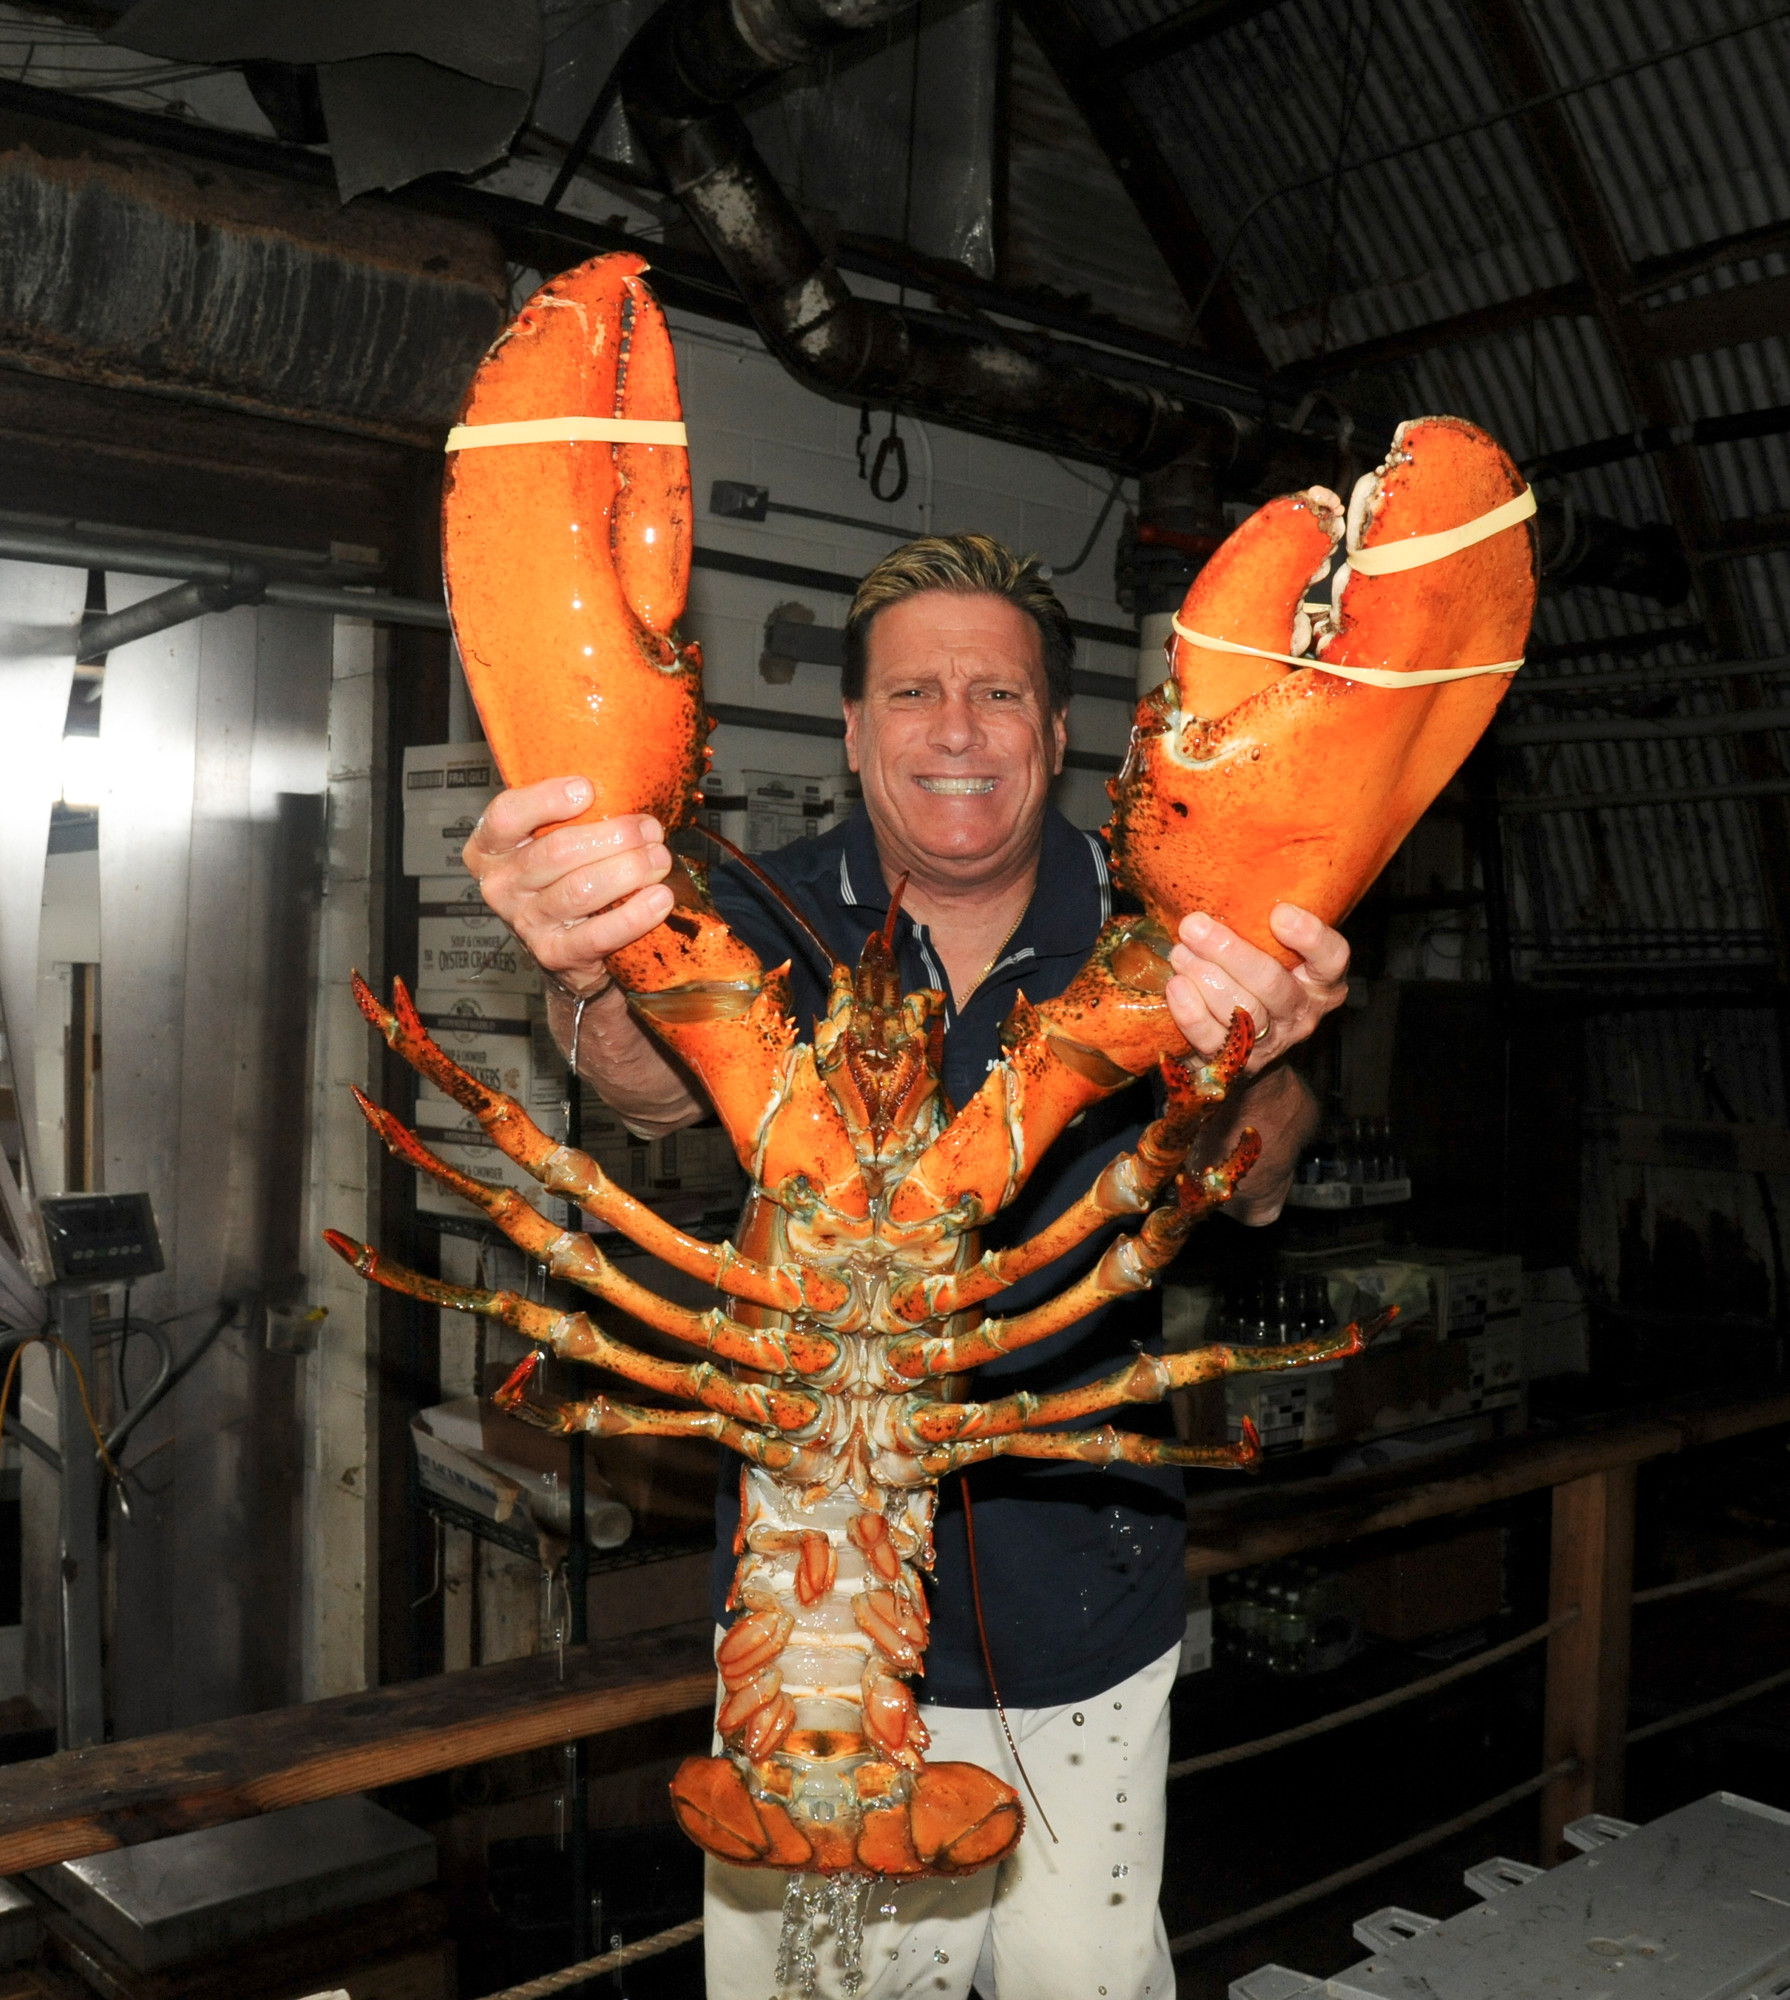 23 Pound Lobster Arrives In Island Park Herald Community Newspapers Www Liherald Com